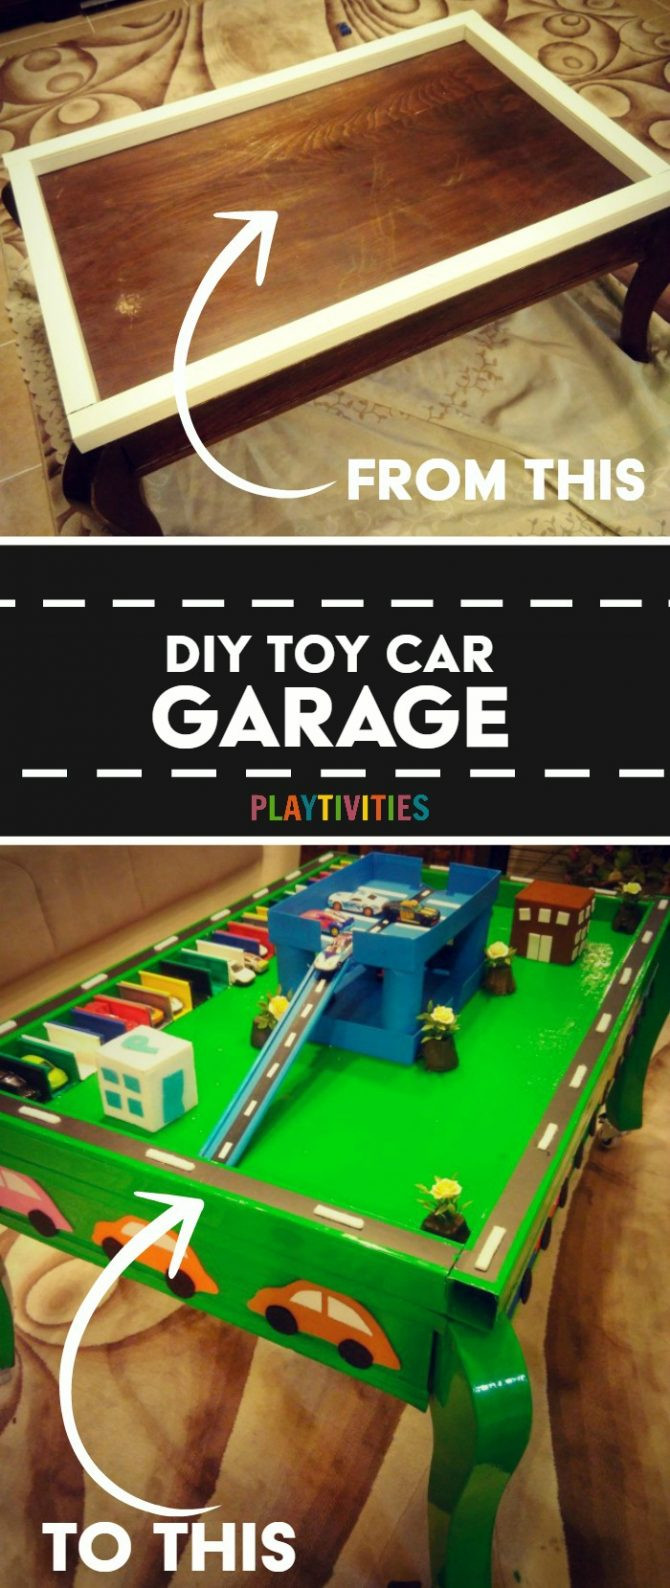 Best ideas about DIY Car Garage . Save or Pin DIY Toy Car Garage Table That Cost Almost Nothing To Make Now.